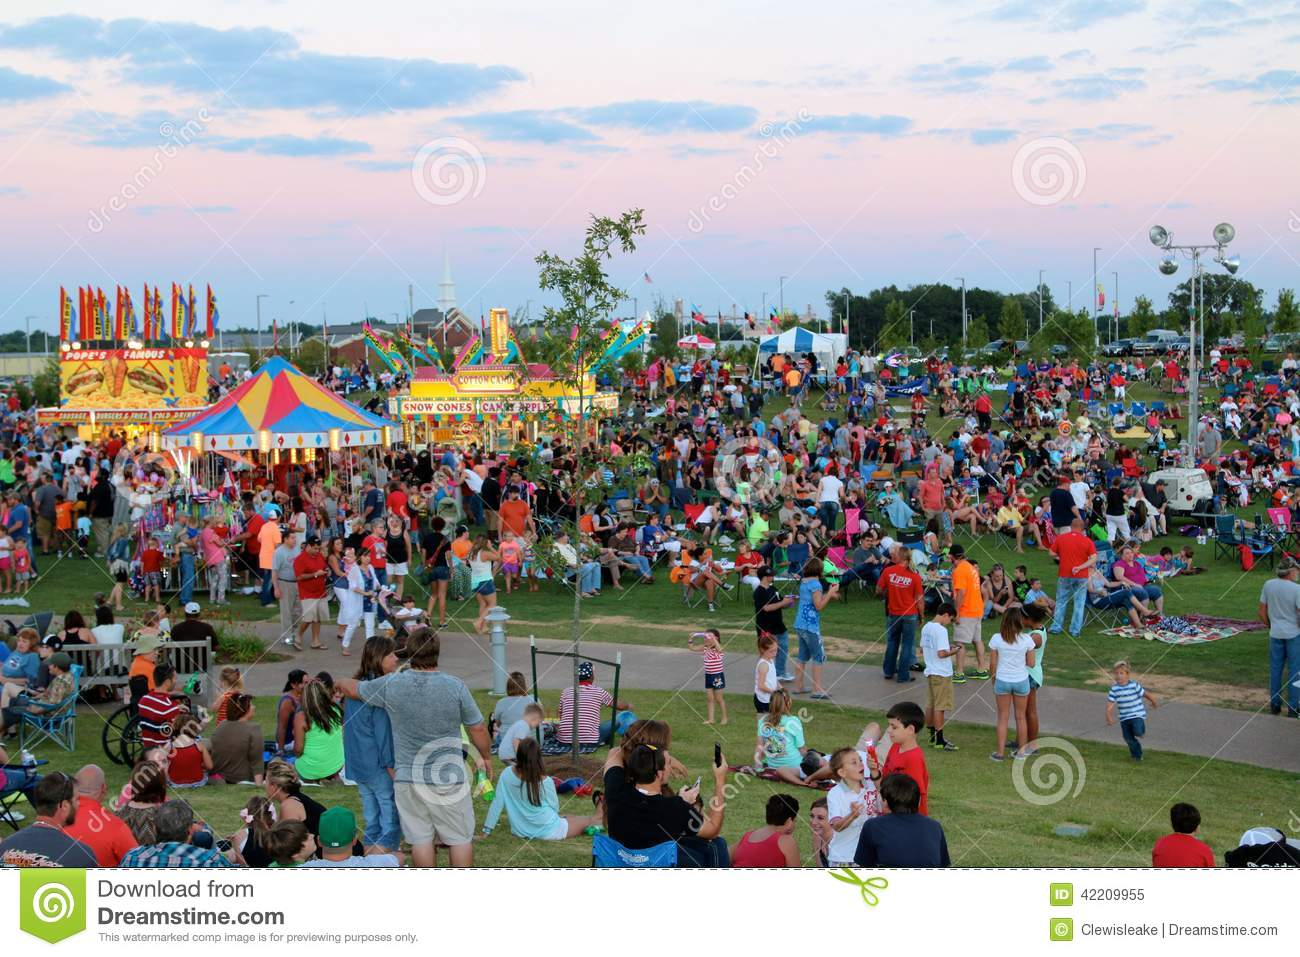 People Enjoy The Fourth of July at The Discovery Park of America, Union City Tennessee